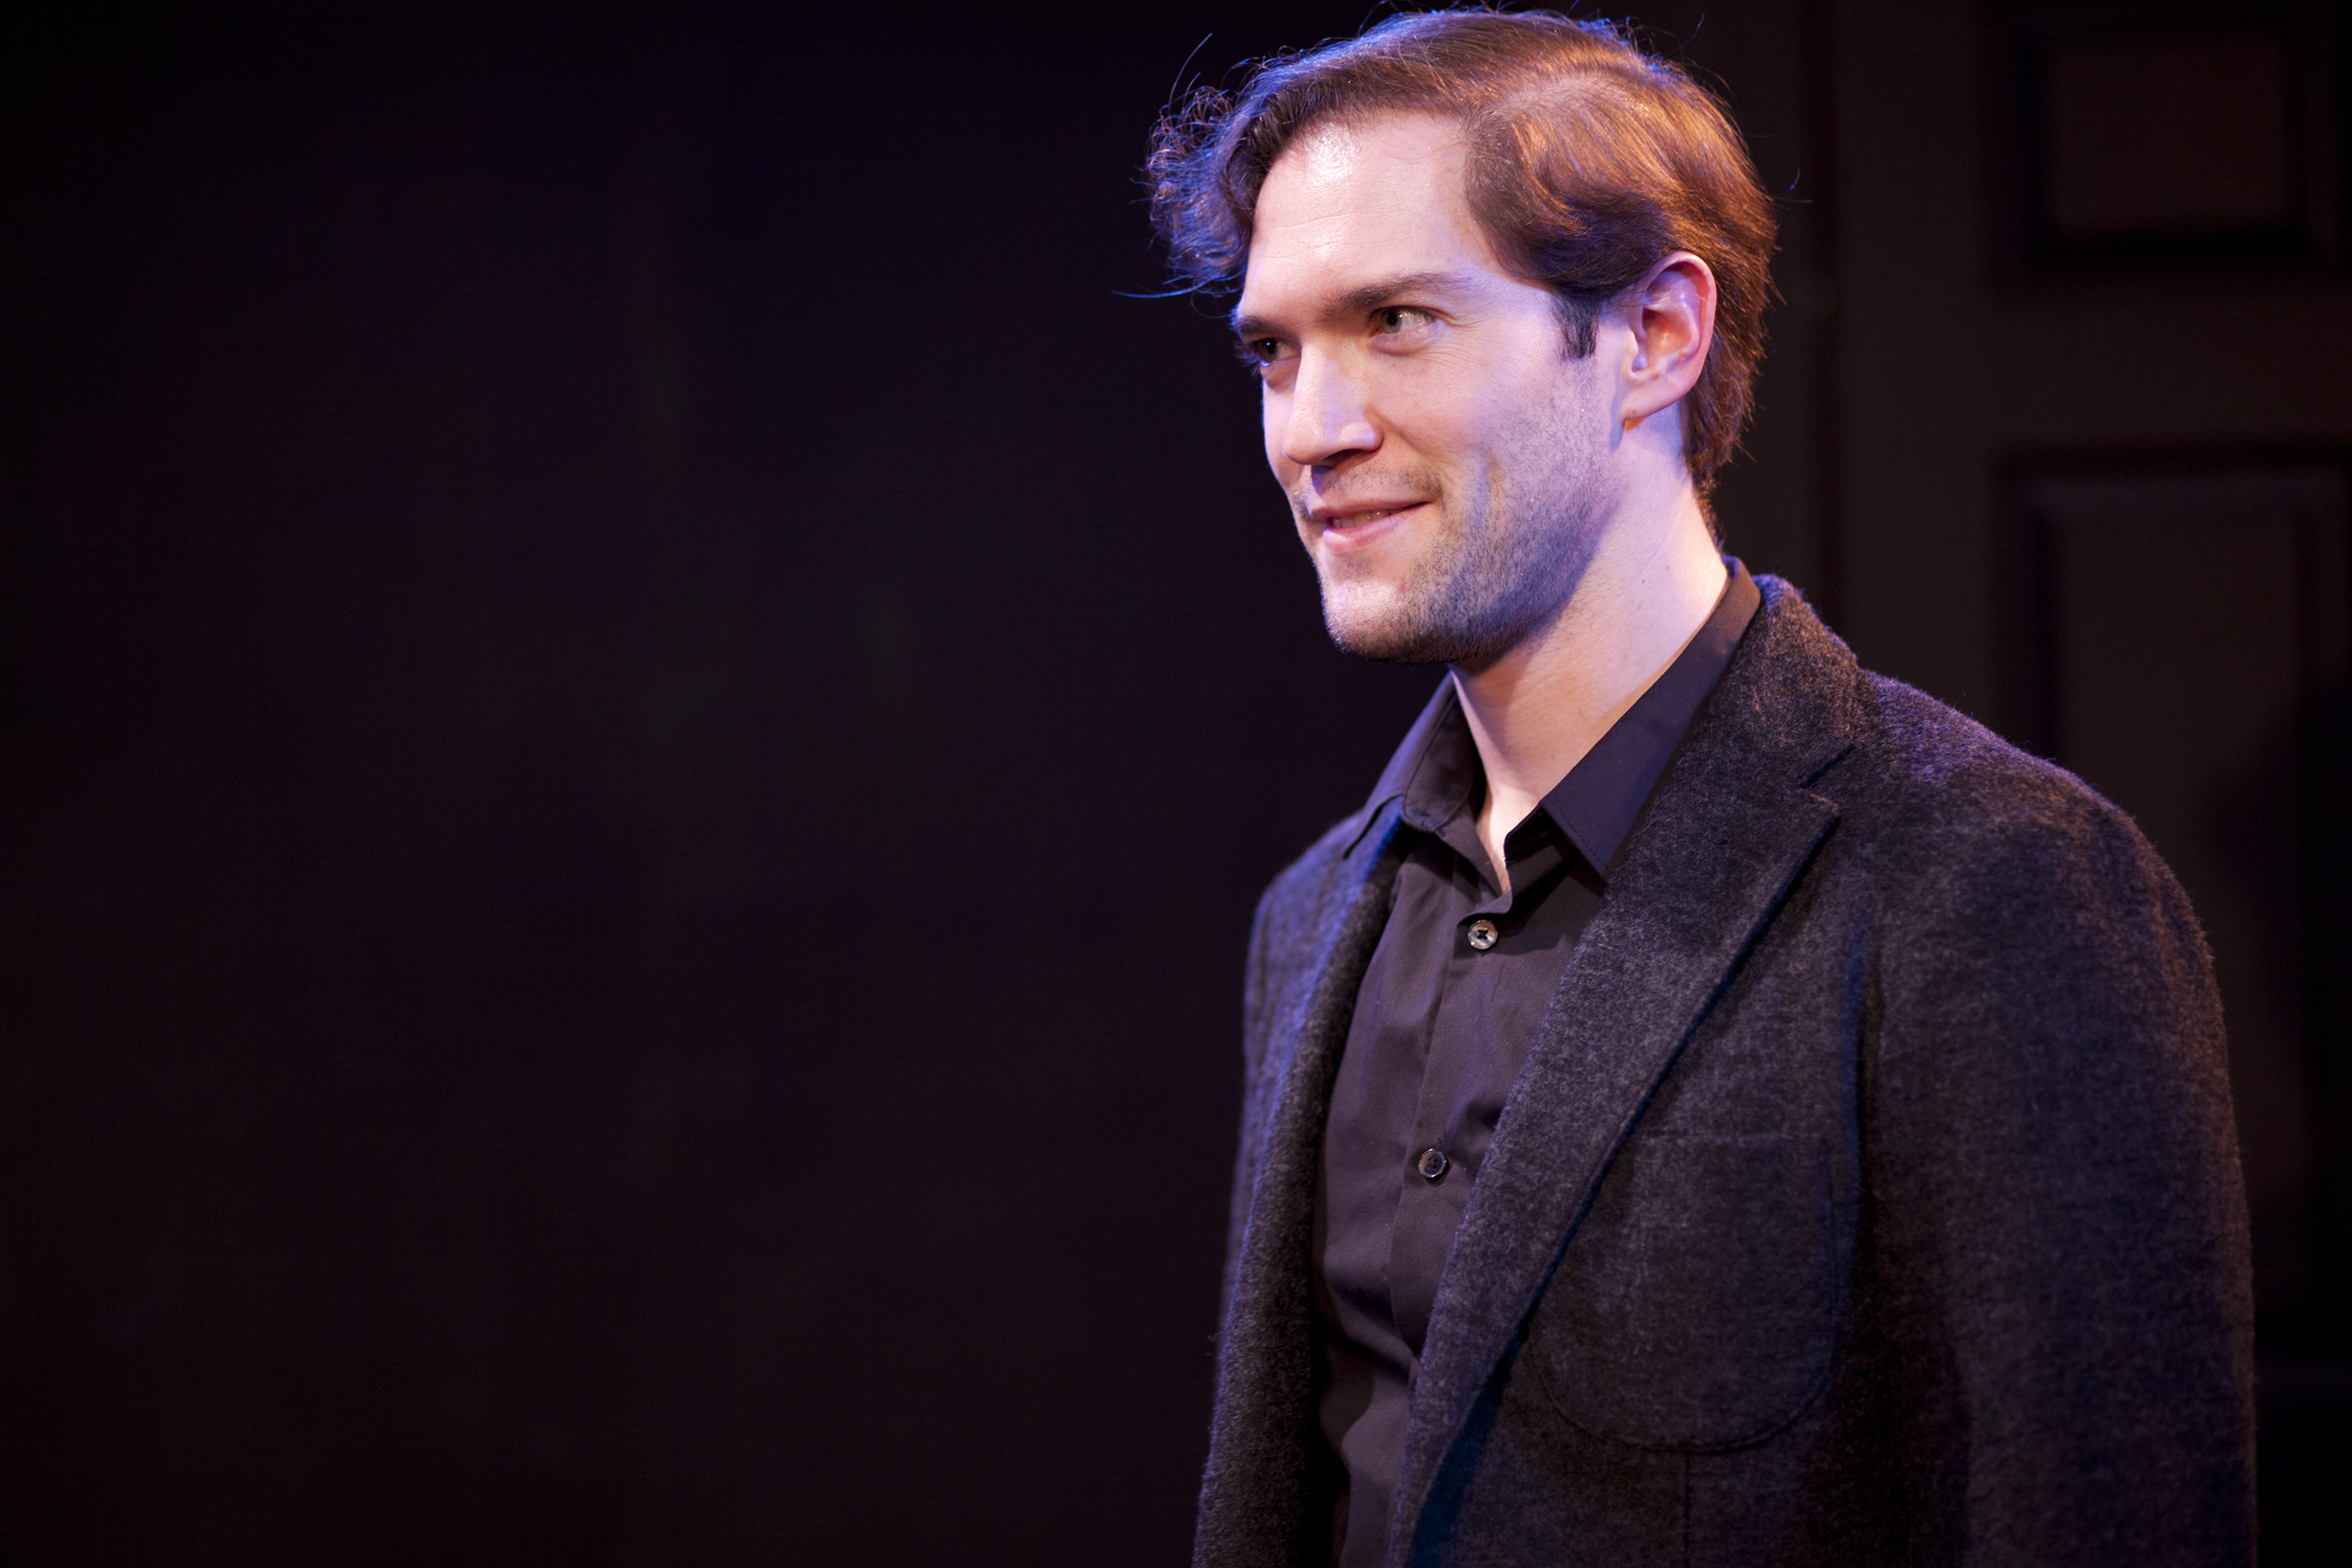 Production image of Hamlet (James Parenti) in May Violets Spring when produced with Dare Lab at The Bridge Theatre inSpring 2014. Photographs by Trish Phelps .